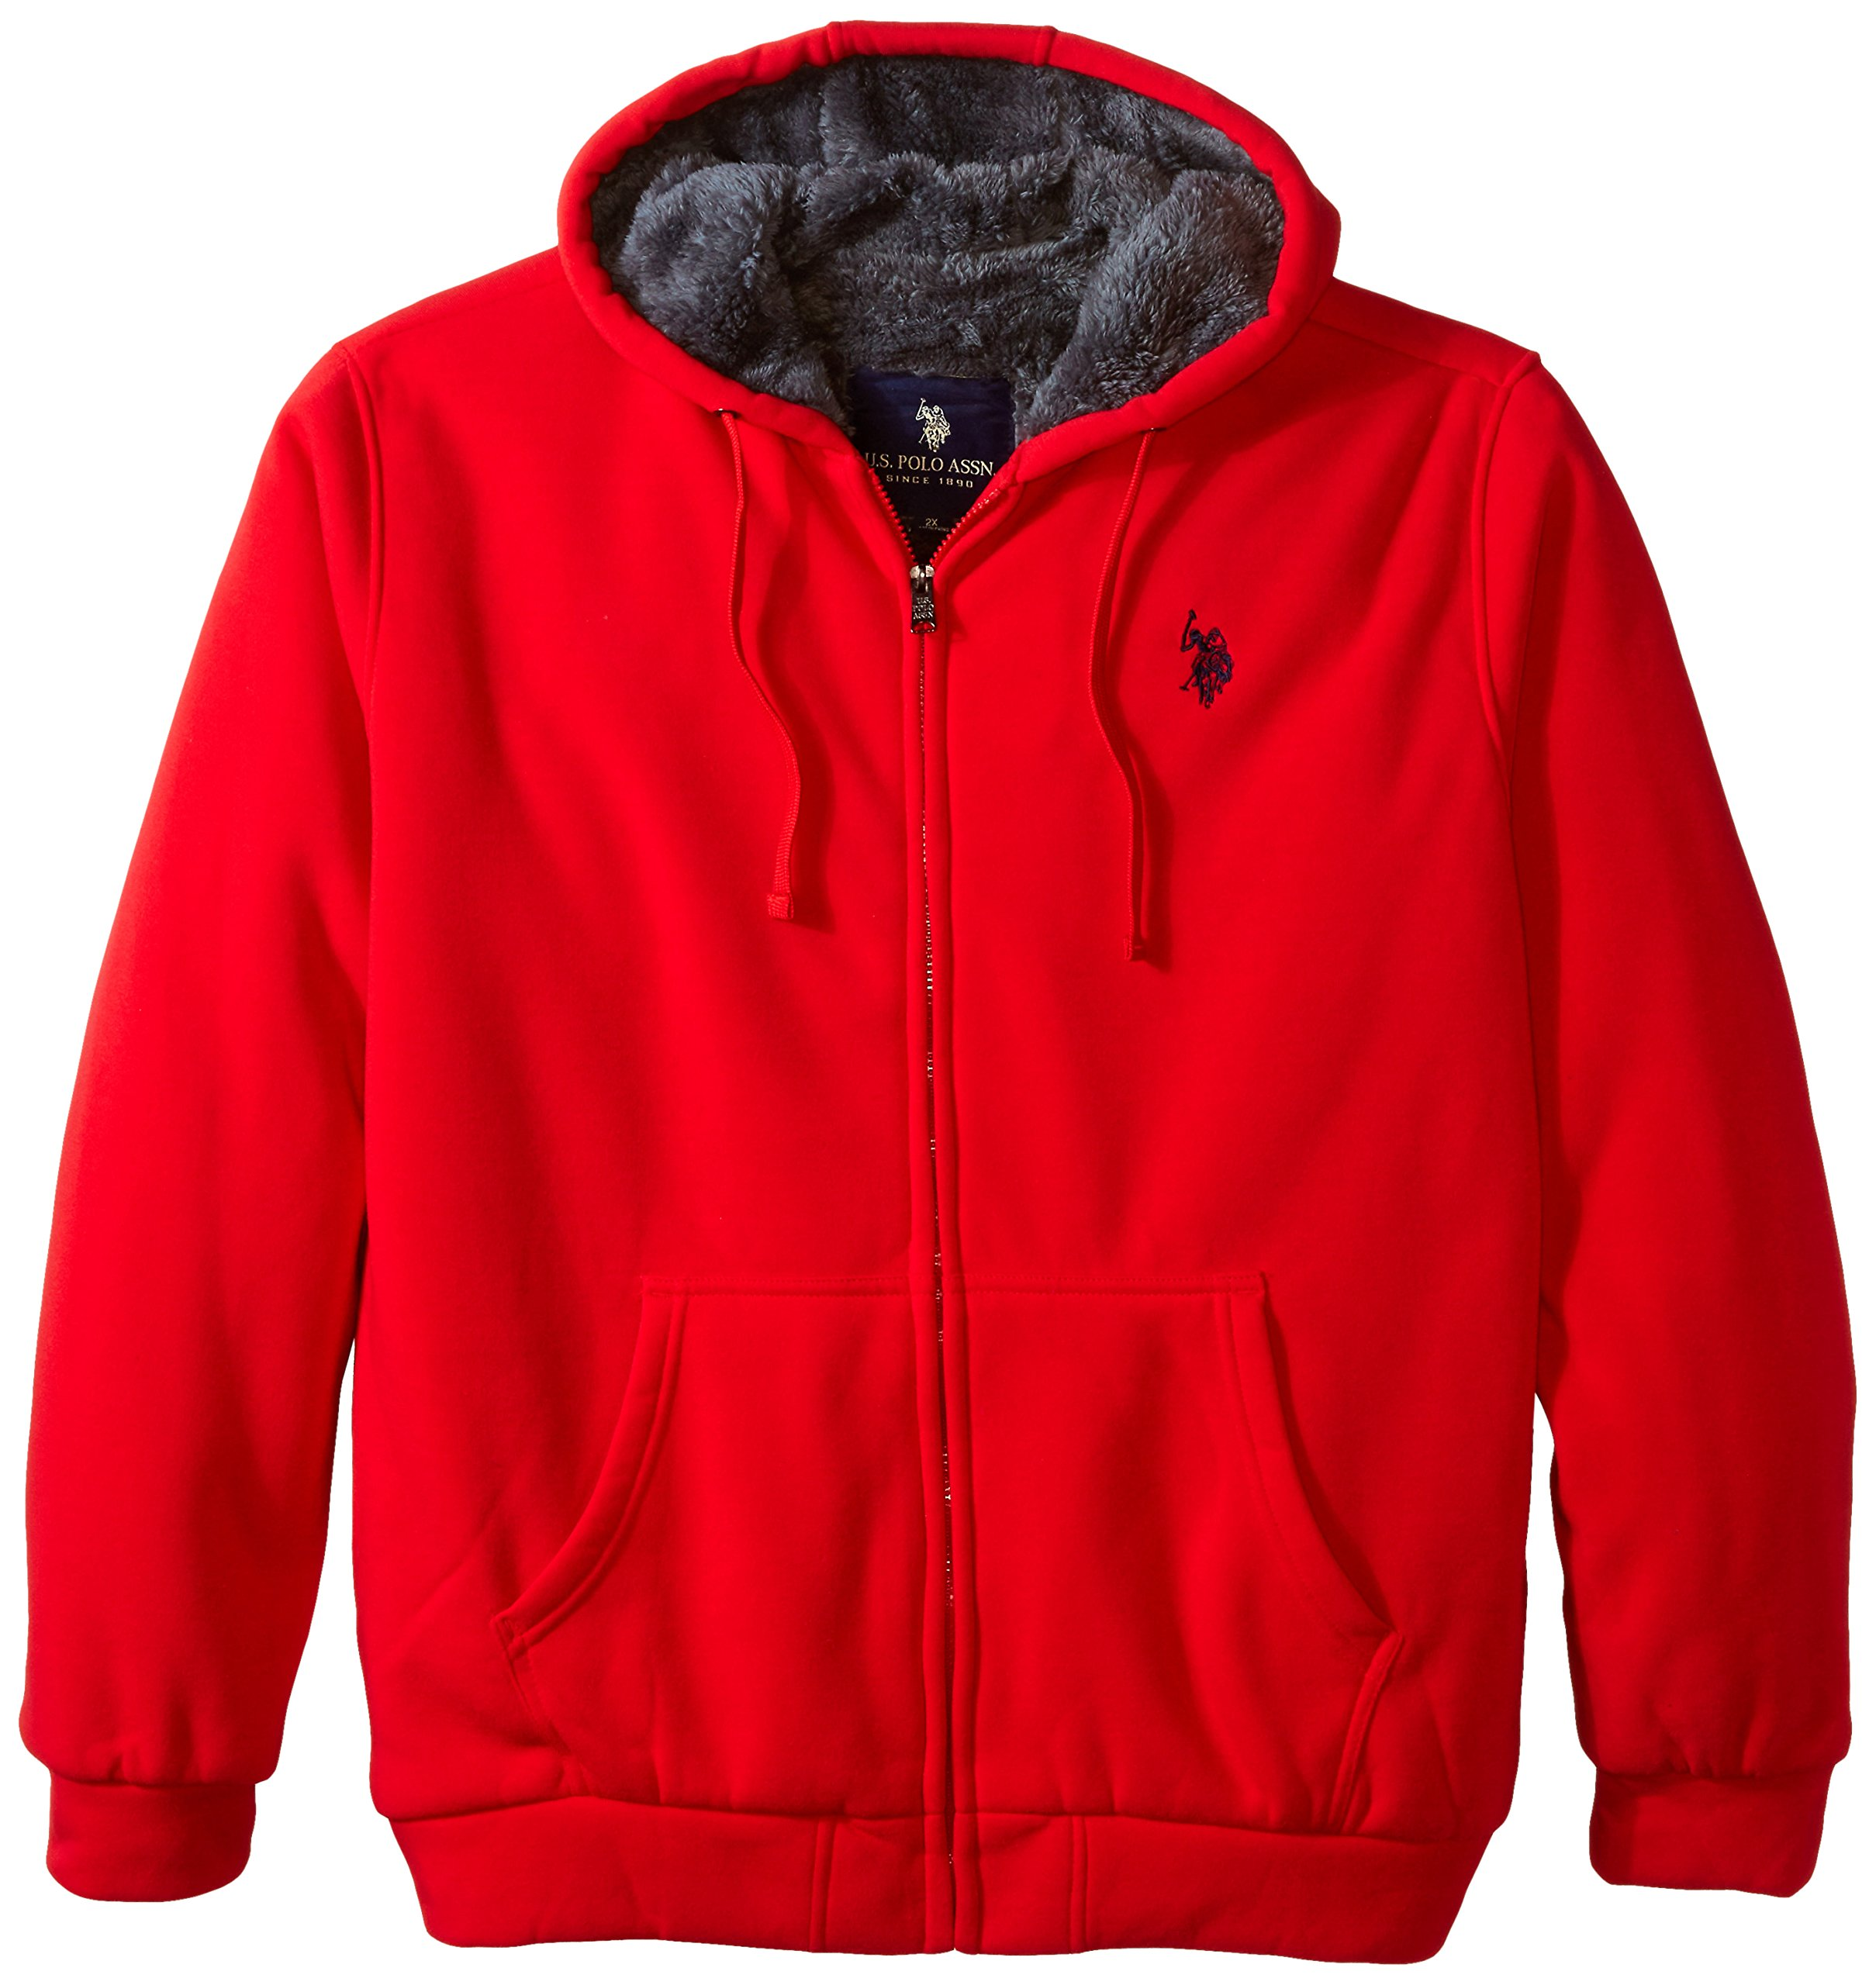 U.S. Polo Assn. Men's Big-Tall Fleece Hoodie with Sherpa Lining, Engine Red, 2X by U.S. Polo Assn.